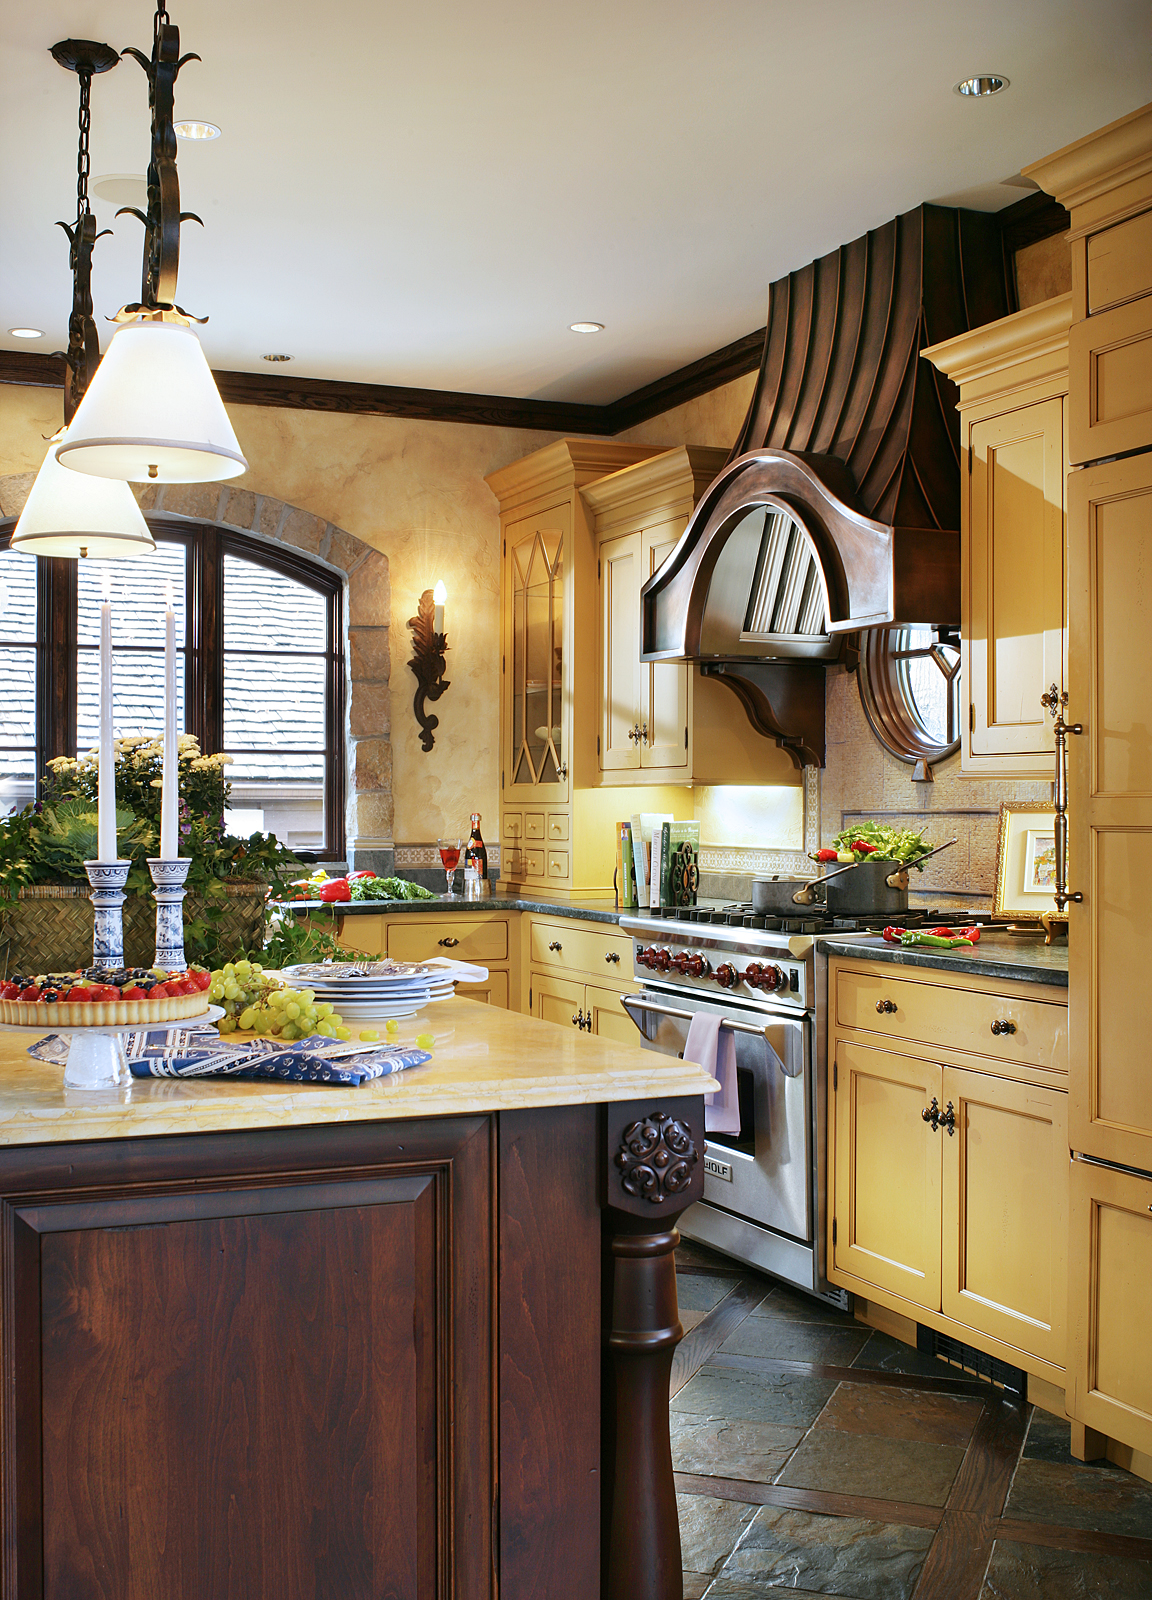 French Country kitchen with timeless old world ambiance, featuring mustard-colored cabinets, wrought iron light fixtures, limestone and soapstone counters, and a slate and wood floor. By J. Stephens Interiors